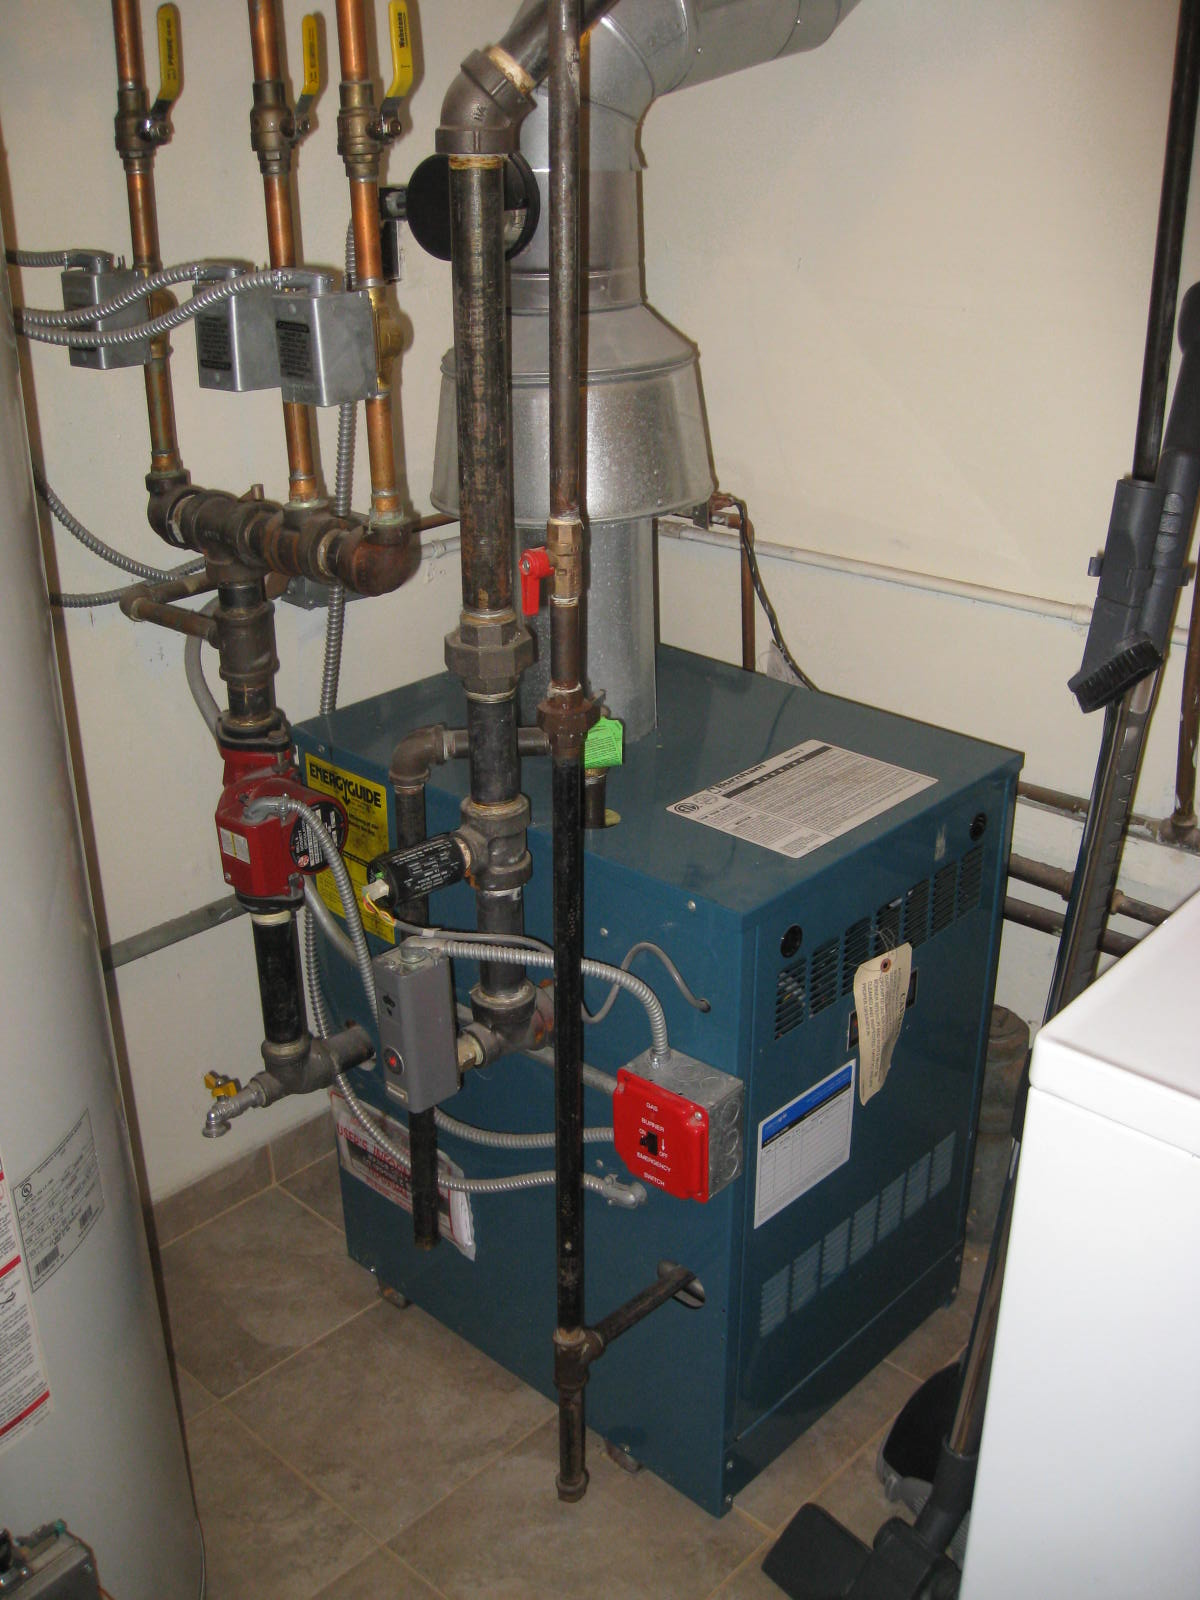 I Have A Burnham Series 2 Boiler For Our Home Natural Gas